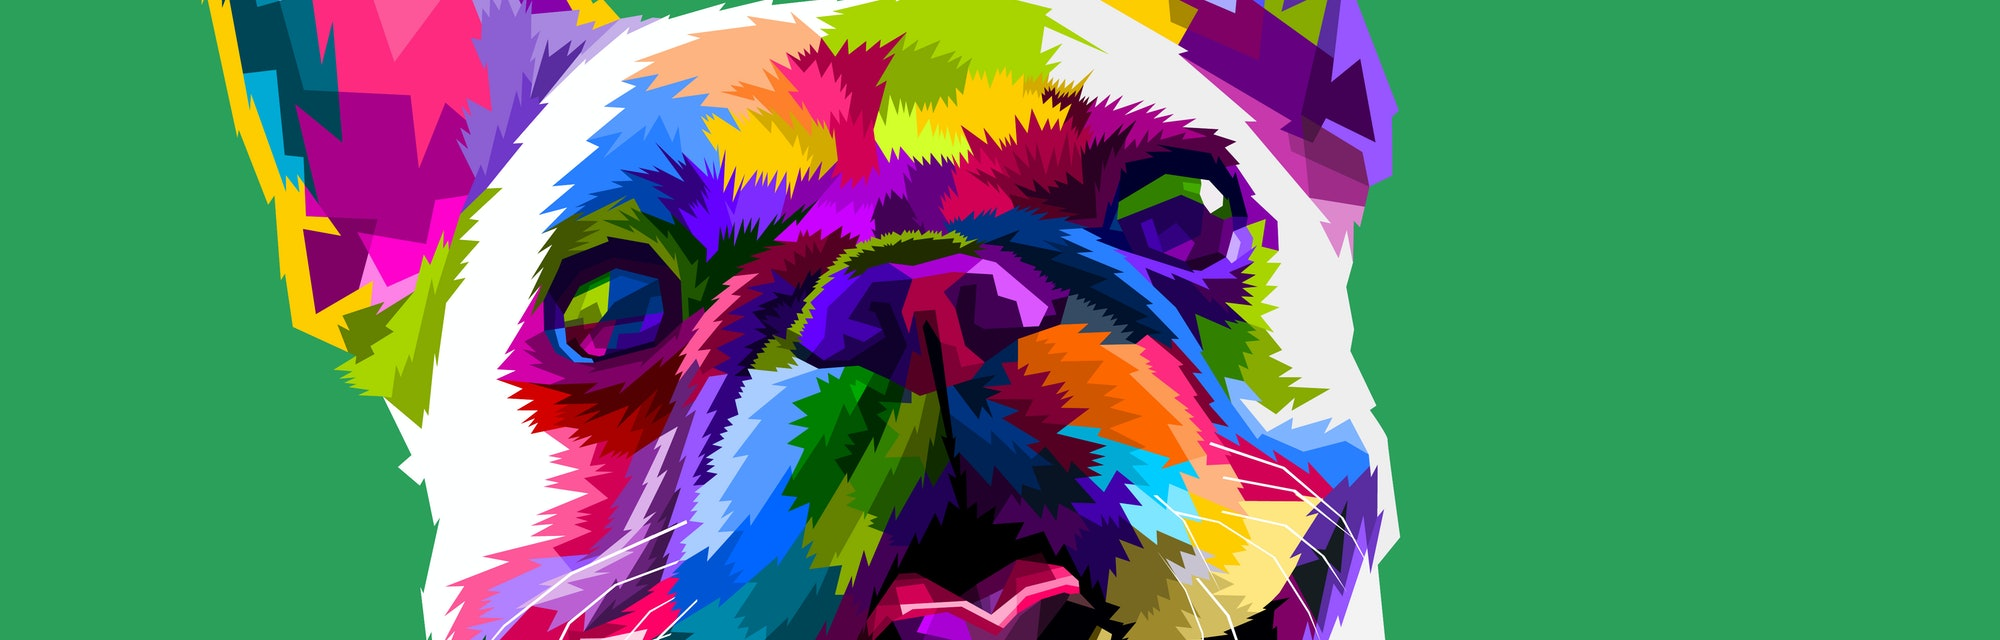 french bulldog in pop art colors isolated on green background